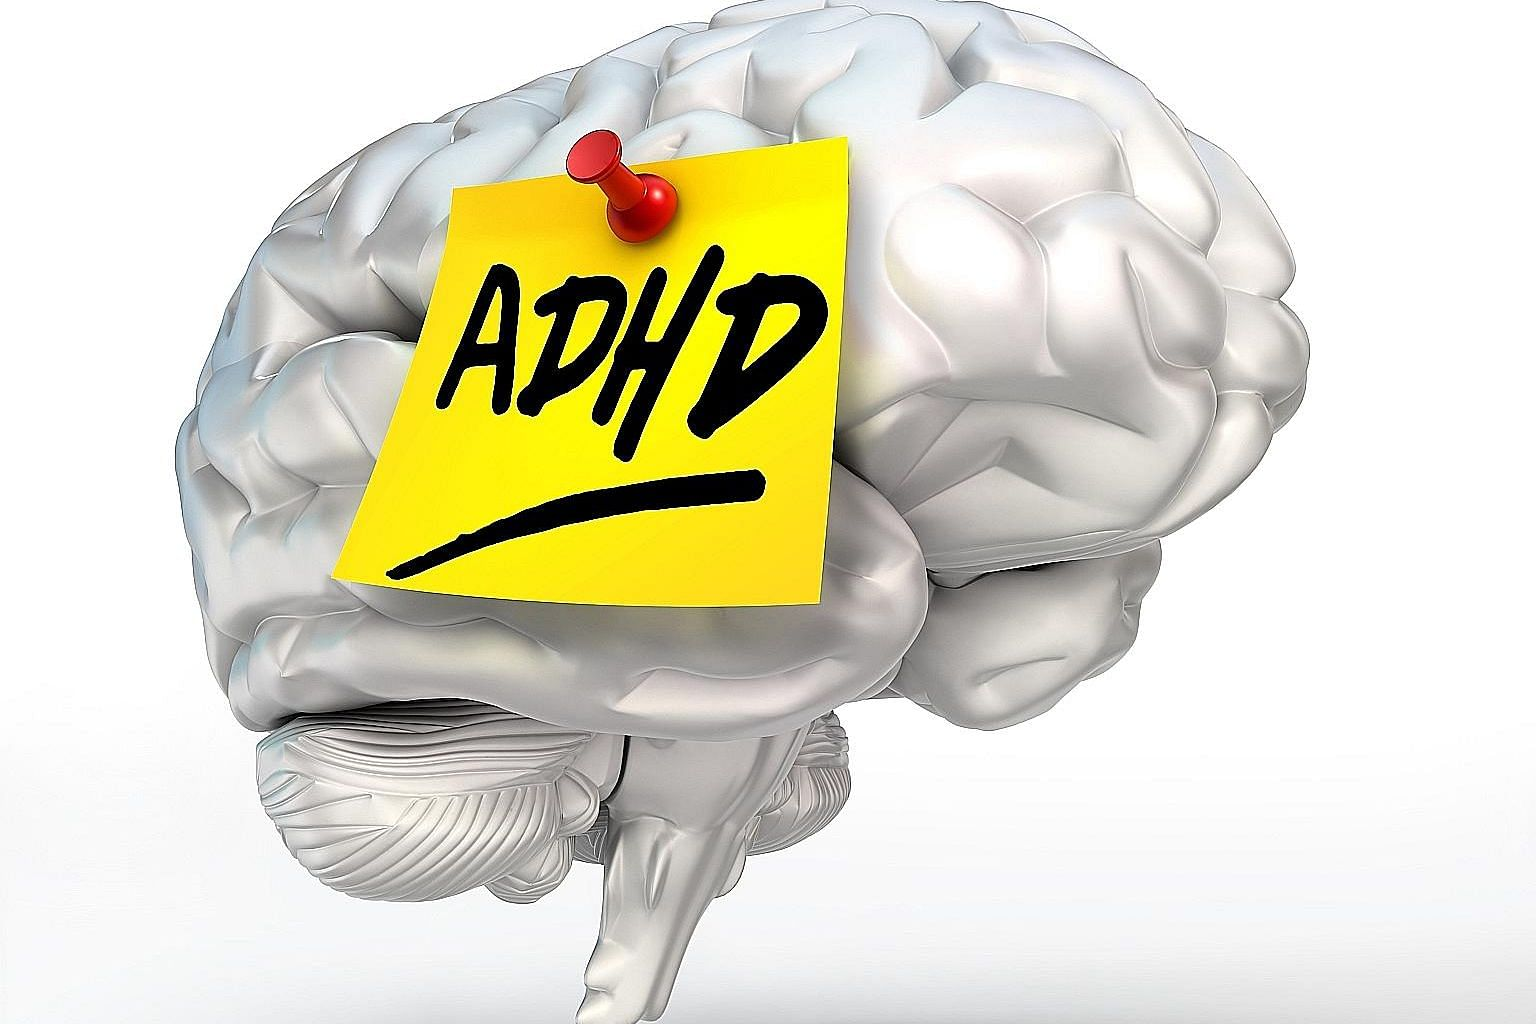 ADHD is caused by a delay in maturation involving parts of the brain responsible for attention control and behaviour inhibition.